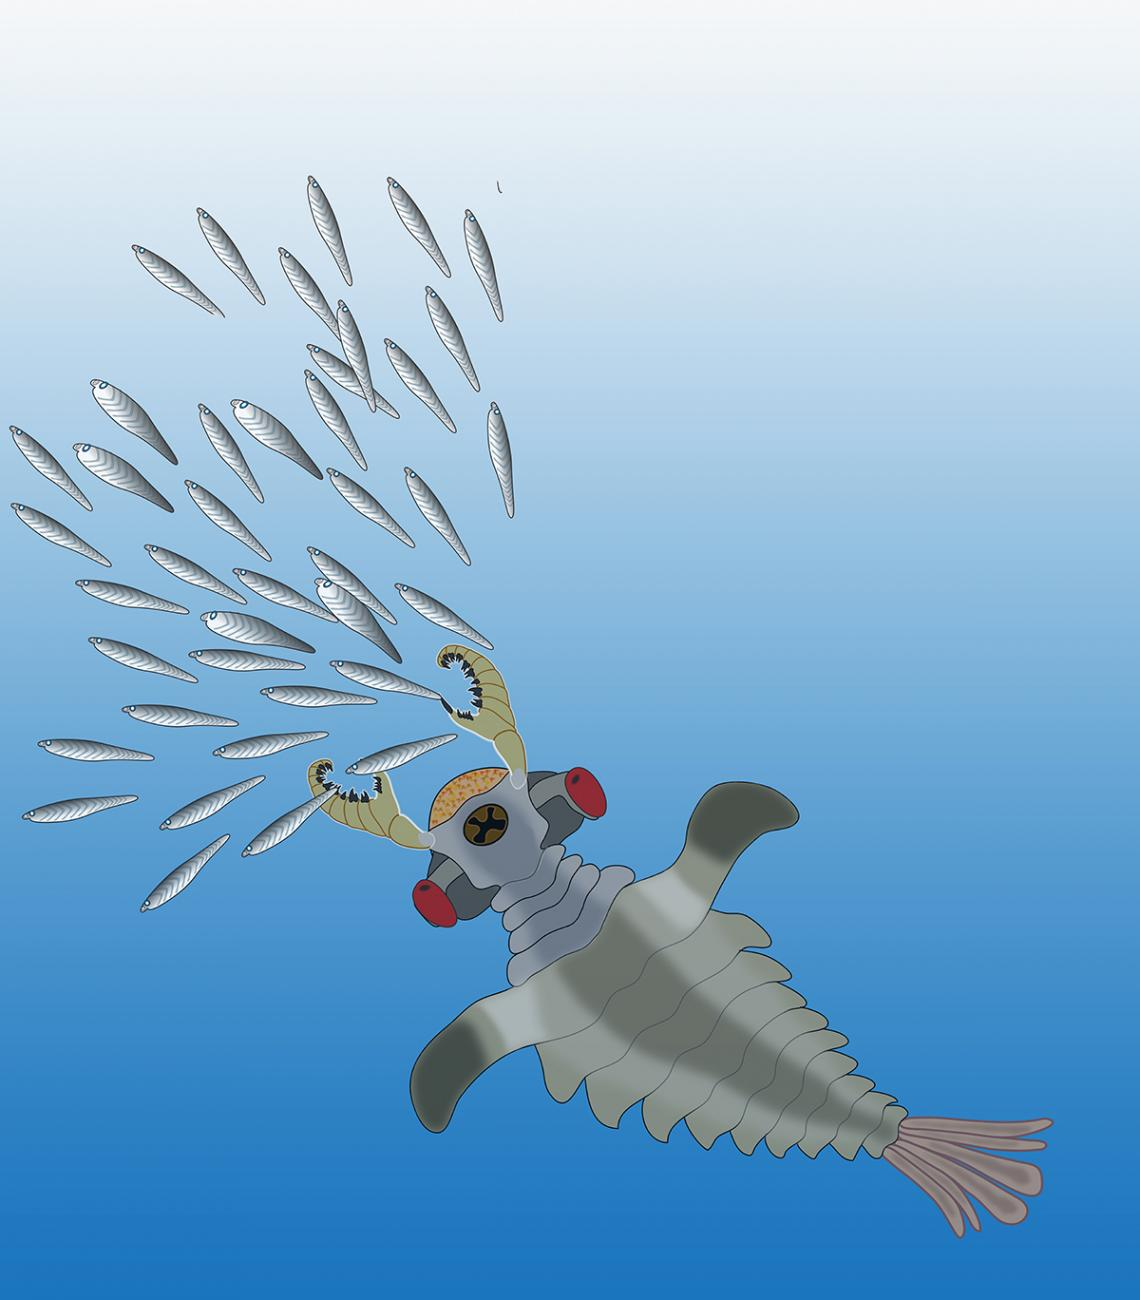 Artist's impression of Lyararapax, one of the species of the world's first predators, the anomalocaridids, chasing its possible prey, primitive fishes that also existed in the Lower Cambrian.